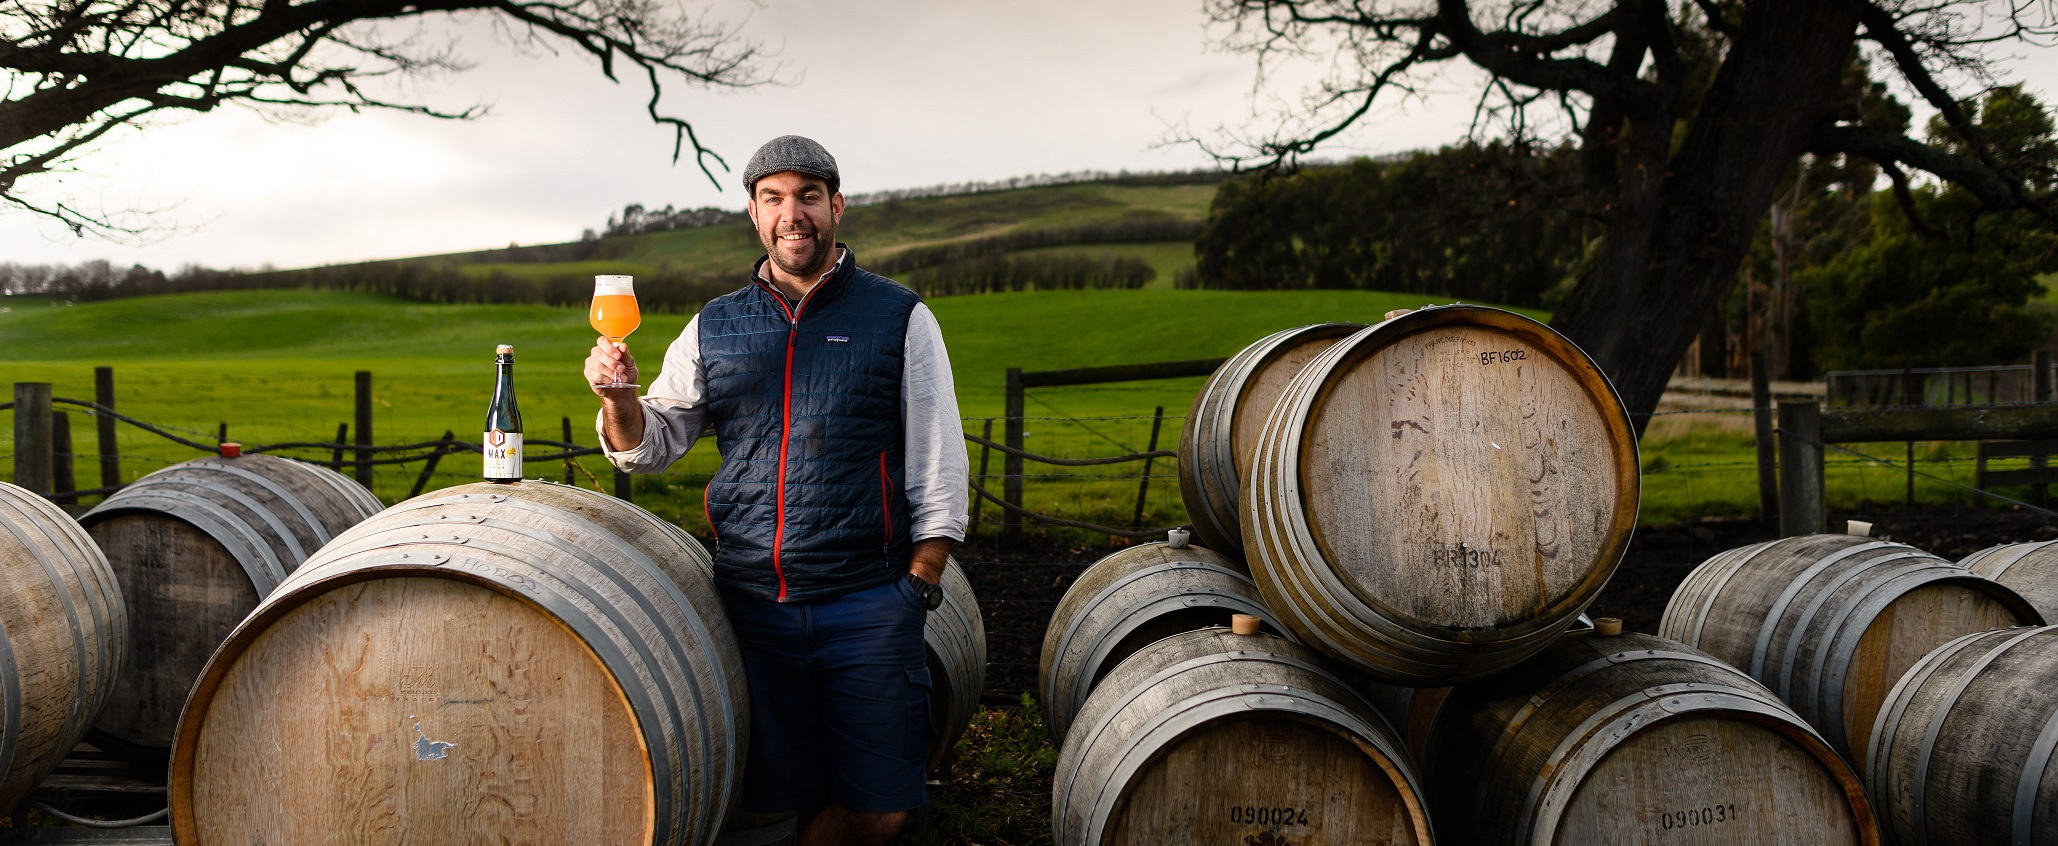 Van Dieman founder and brewer Will Tatchell is famous for his sour beers (credit: Scott Geilston)